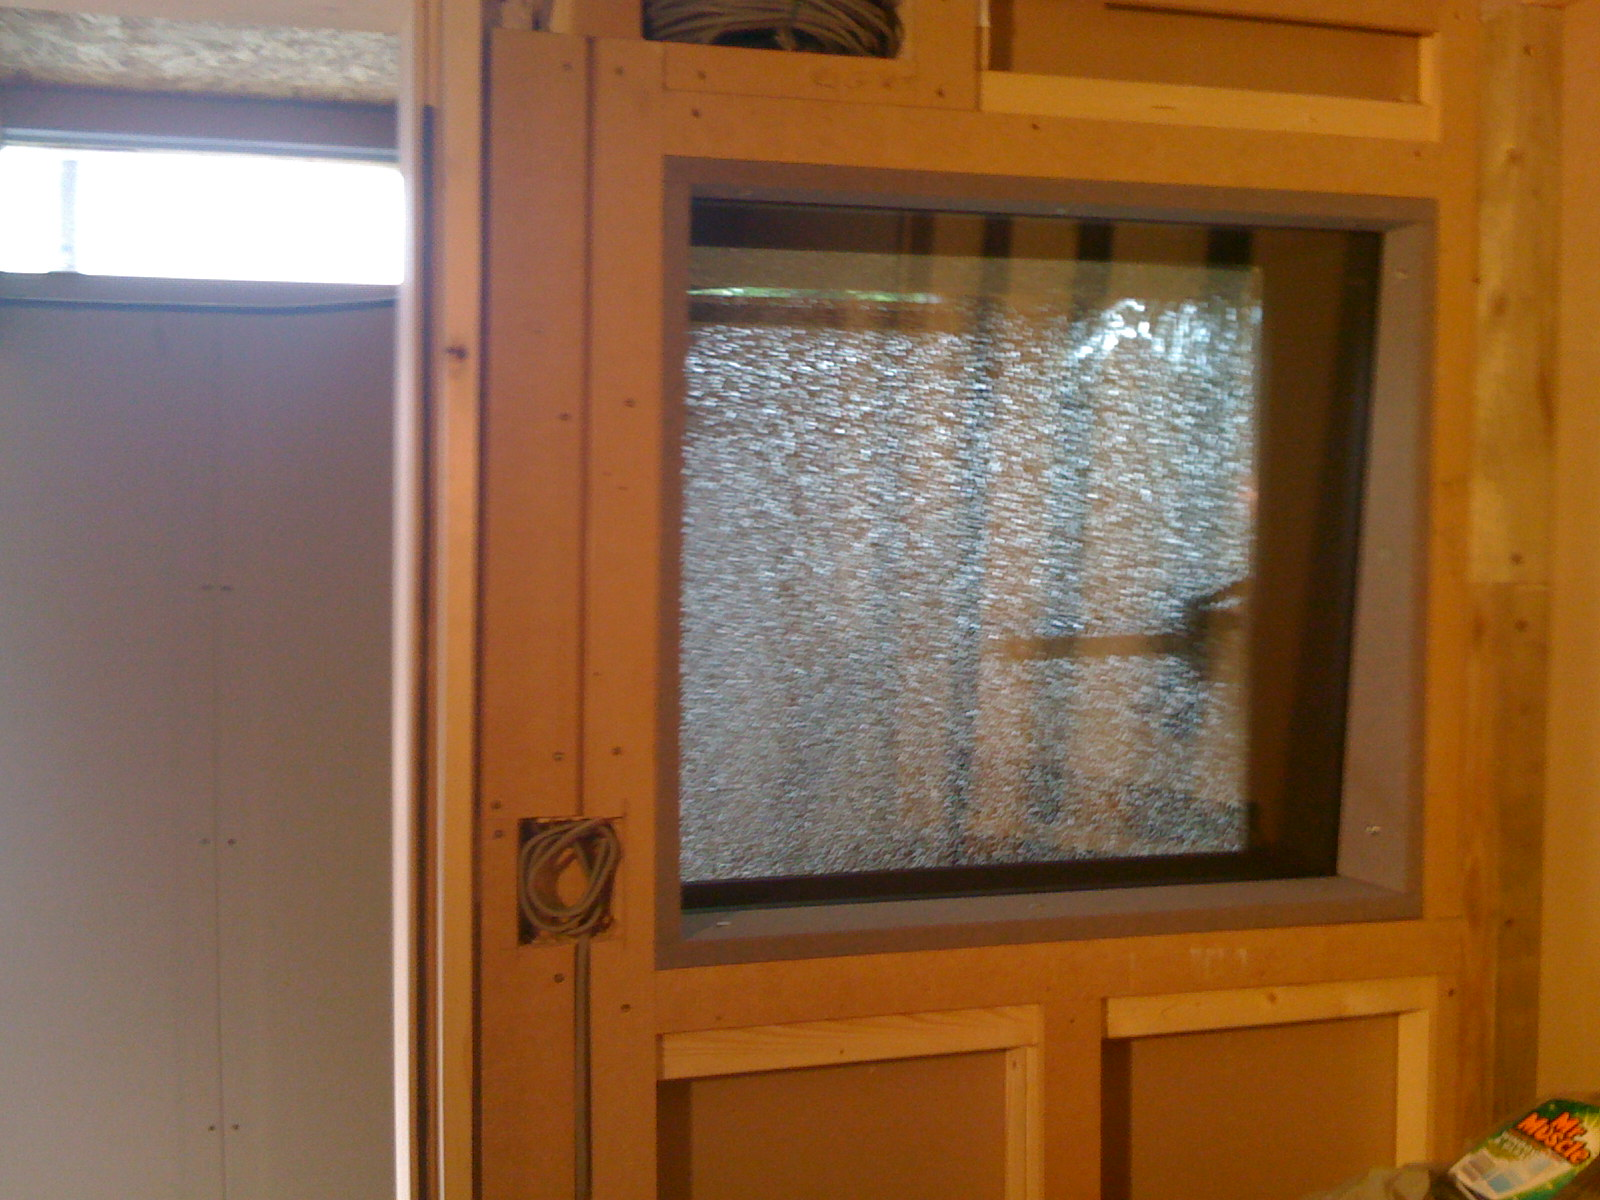 The double-glazed window pane has shattered and will need replacing.